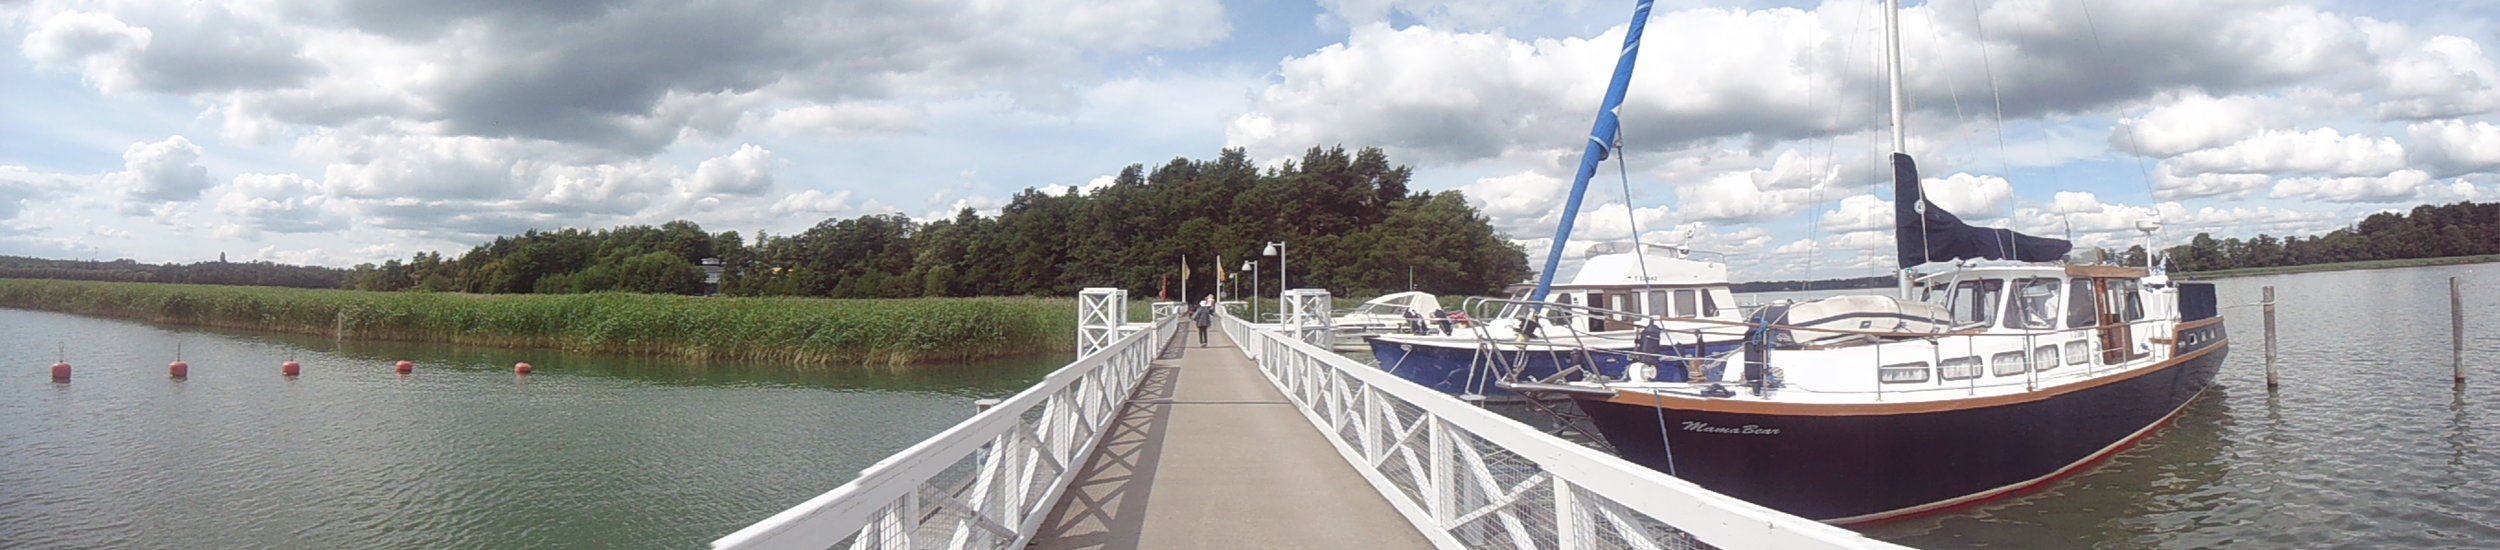 The bridge over to the island where Moomin World is situated adds to the excitement and atmosphere.